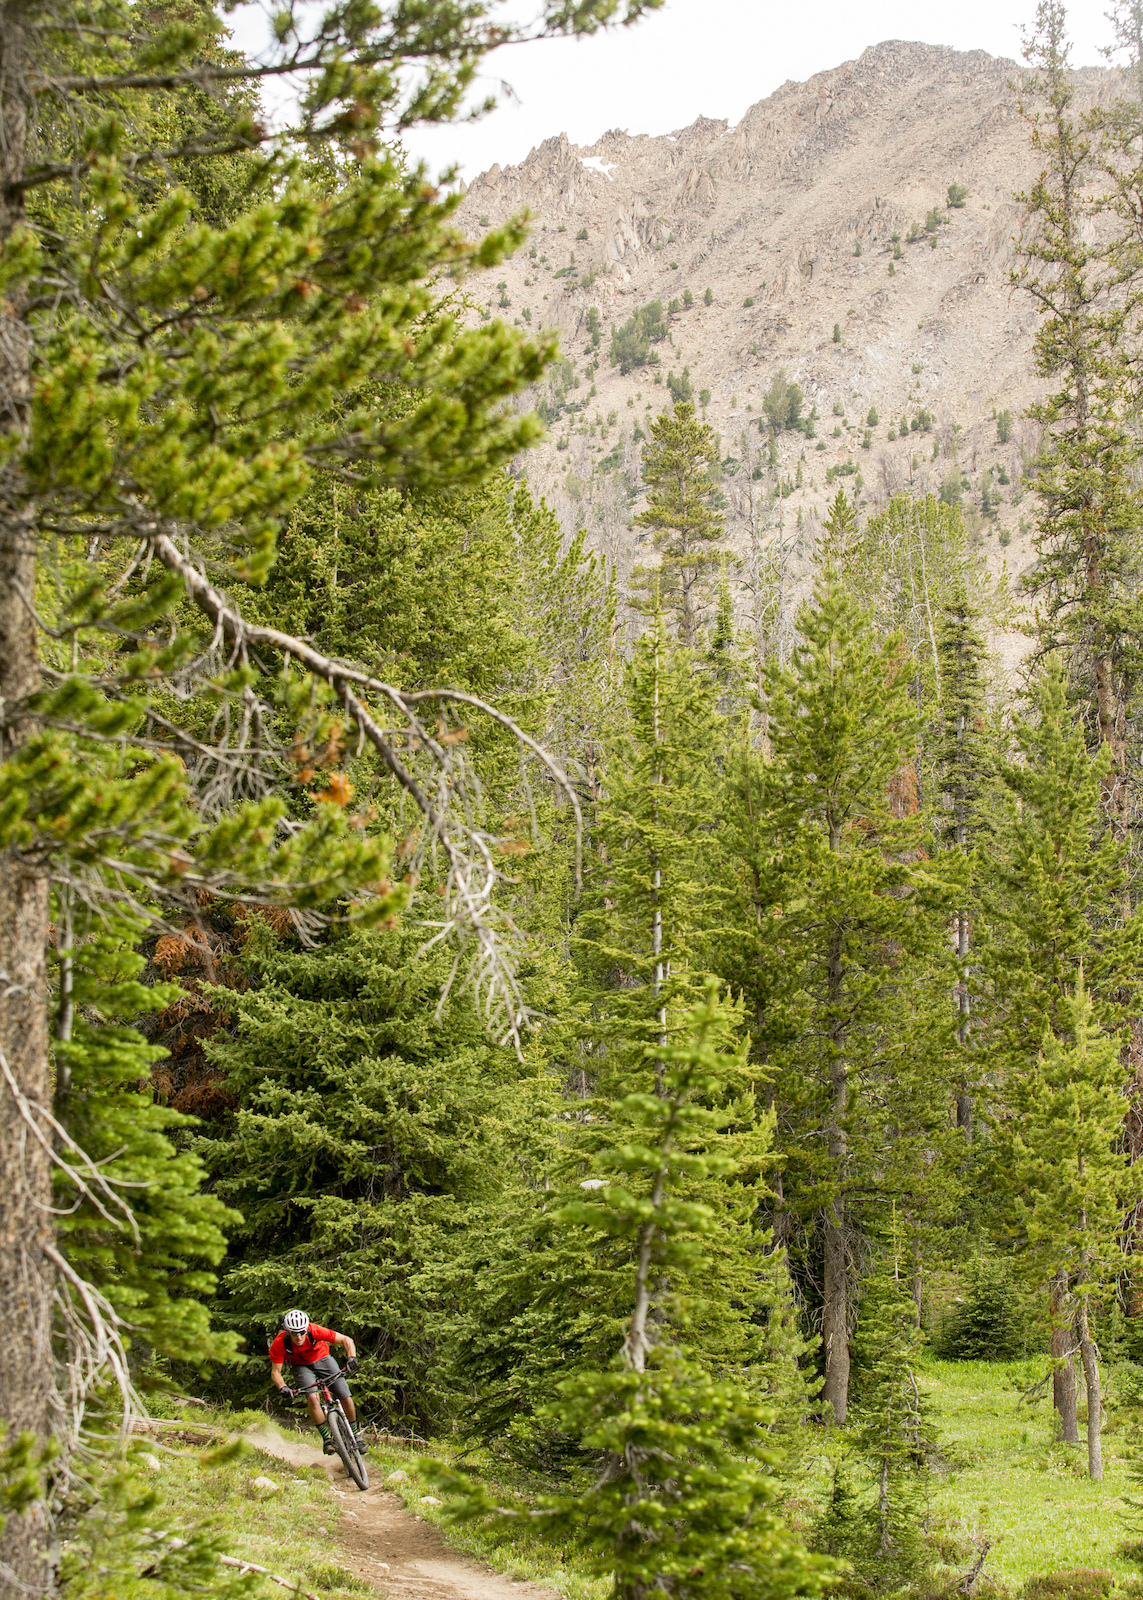 Wilderness mountain biking Photo By Leslie Kehmeier Courtesy of IMBA